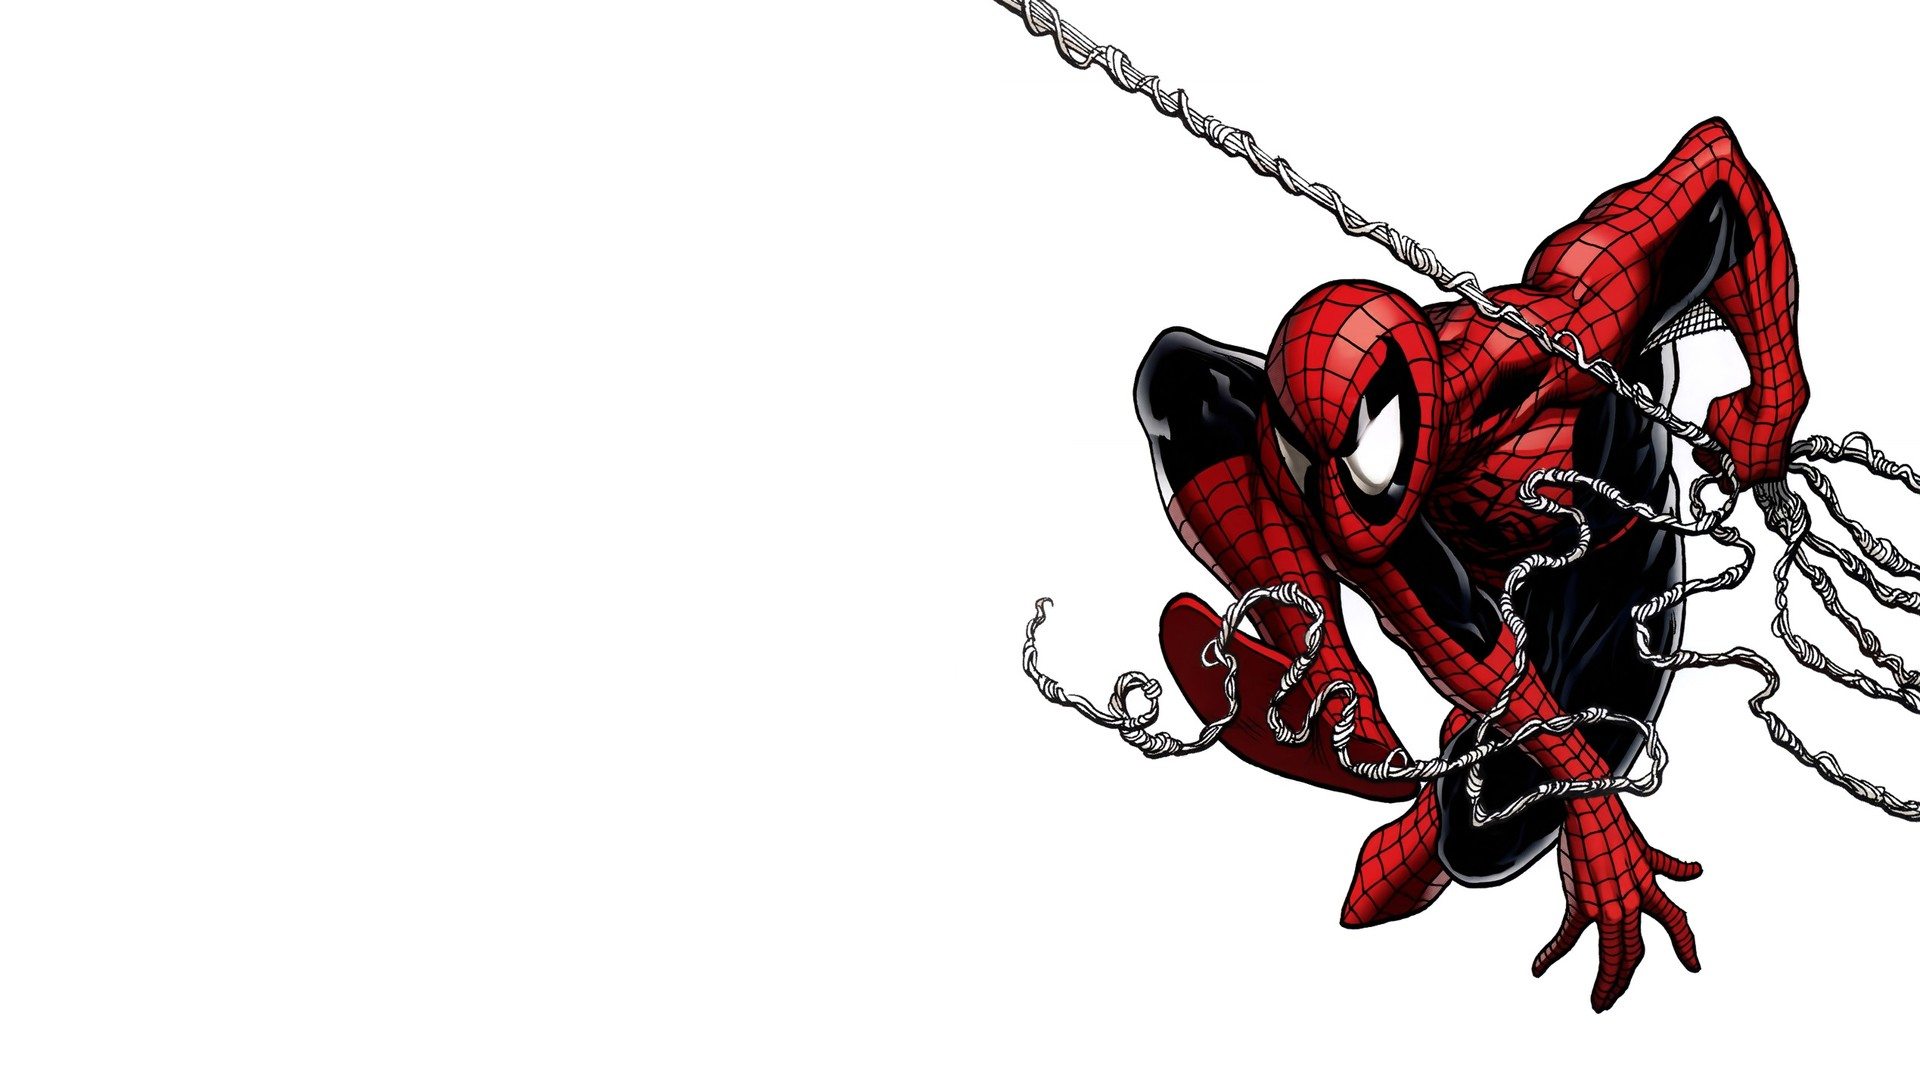 1920x1080 Isolated Spiderman Clipart, Explore Pictures